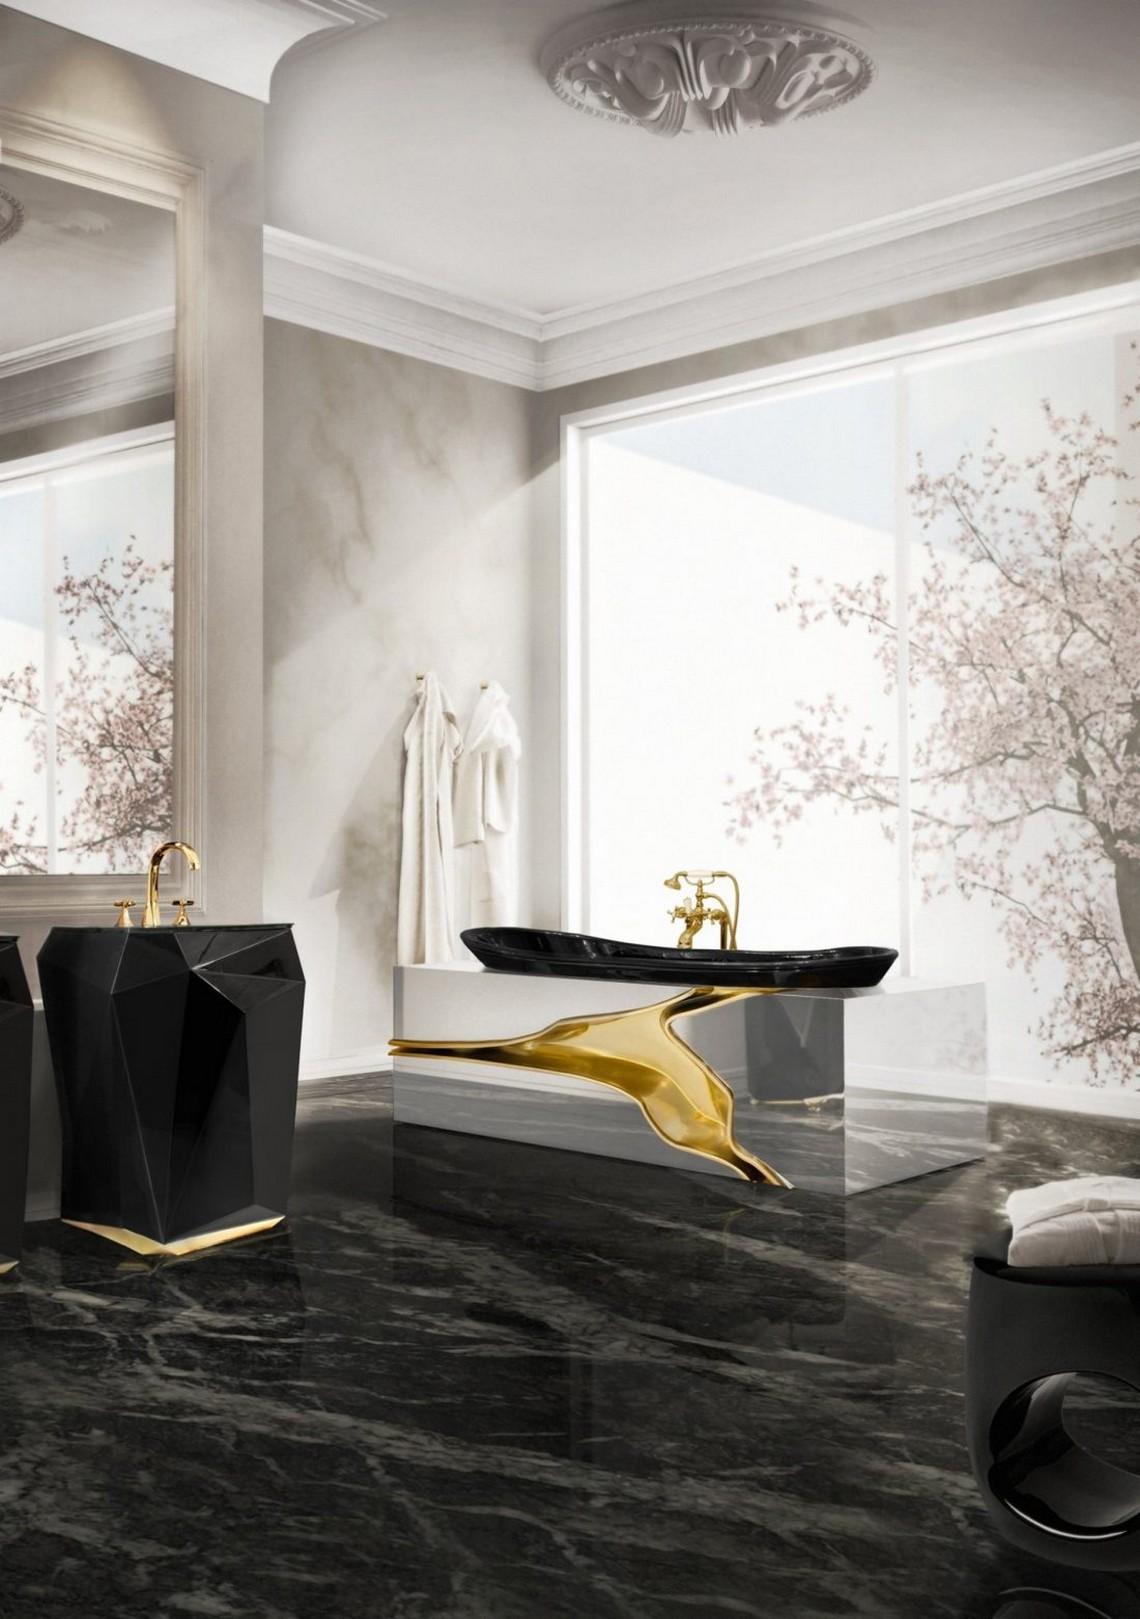 Top 5 Modern Bathtubs by Maison Valentina modern bathtubs Top 5 Modern Bathtubs by Maison Valentina MAISON VALENTINA The Lapiaz bathtub enhances its gold and